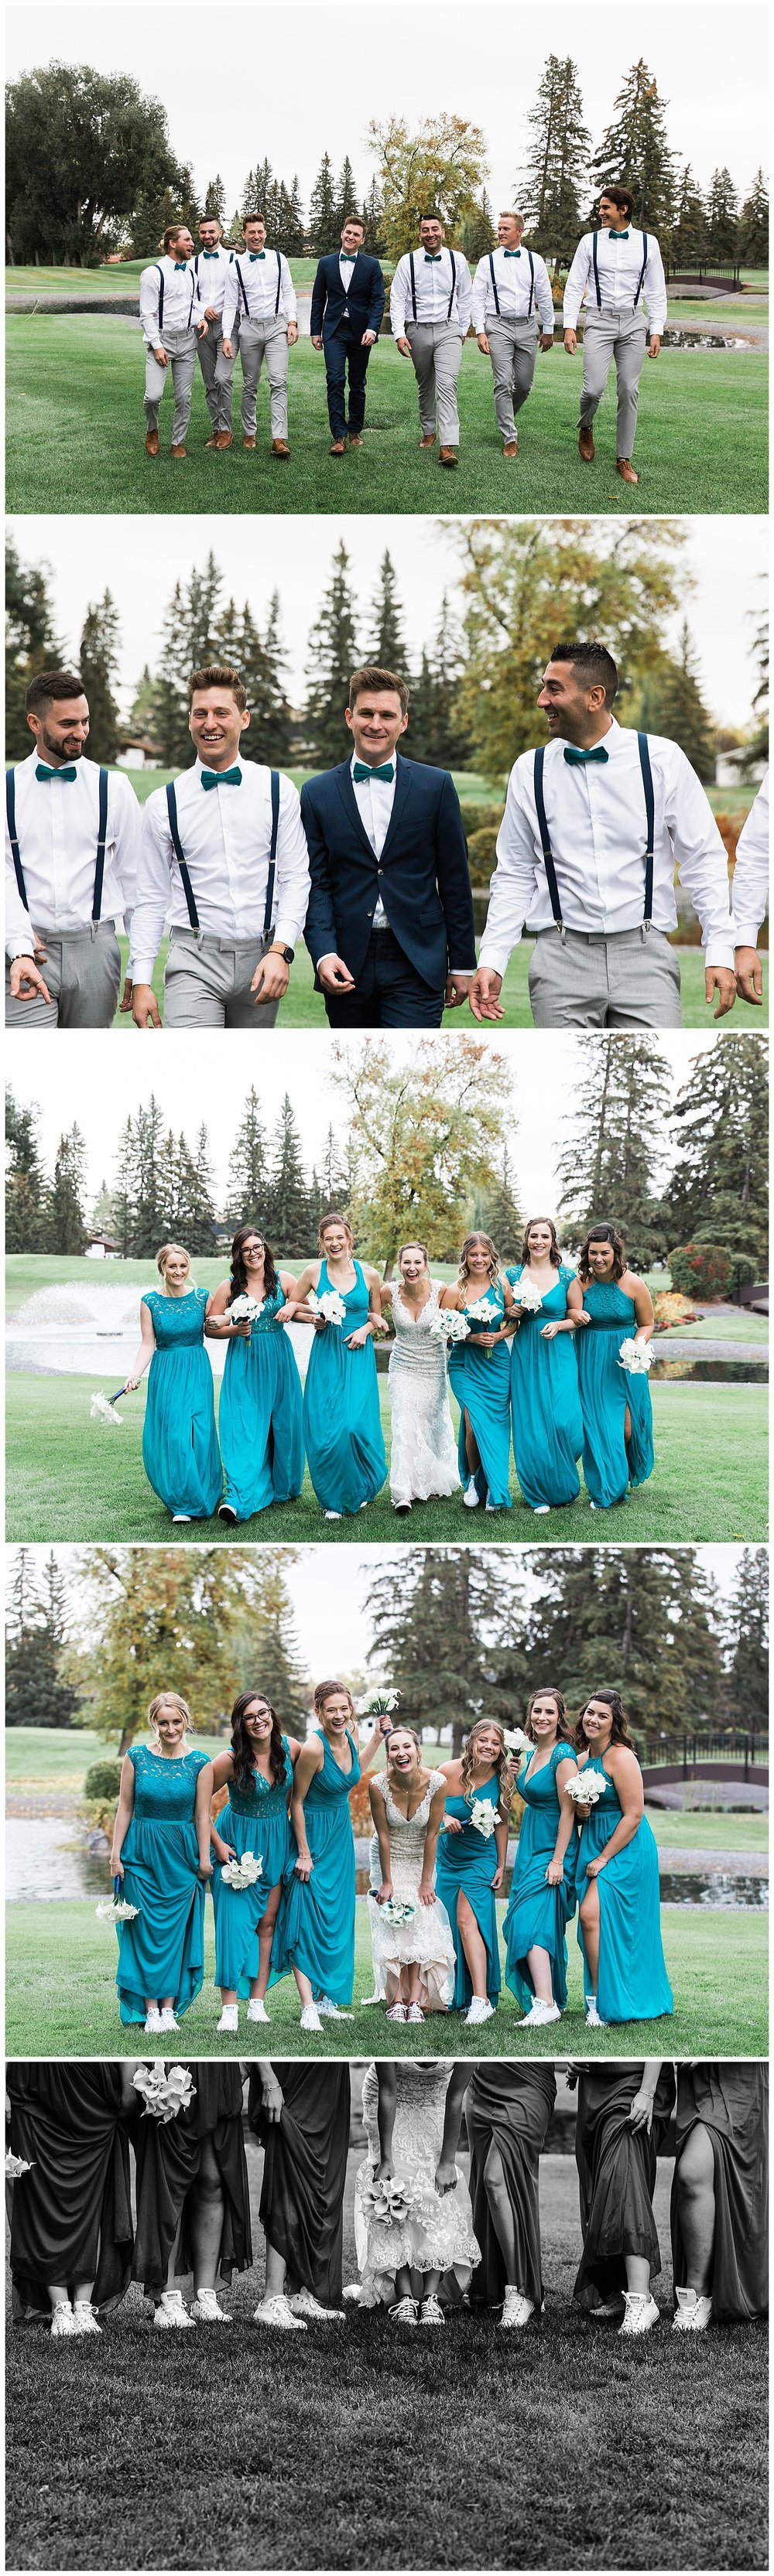 Calgary-fall-wedding-photographer-willow-park-golf-country-club-_0010.jpg